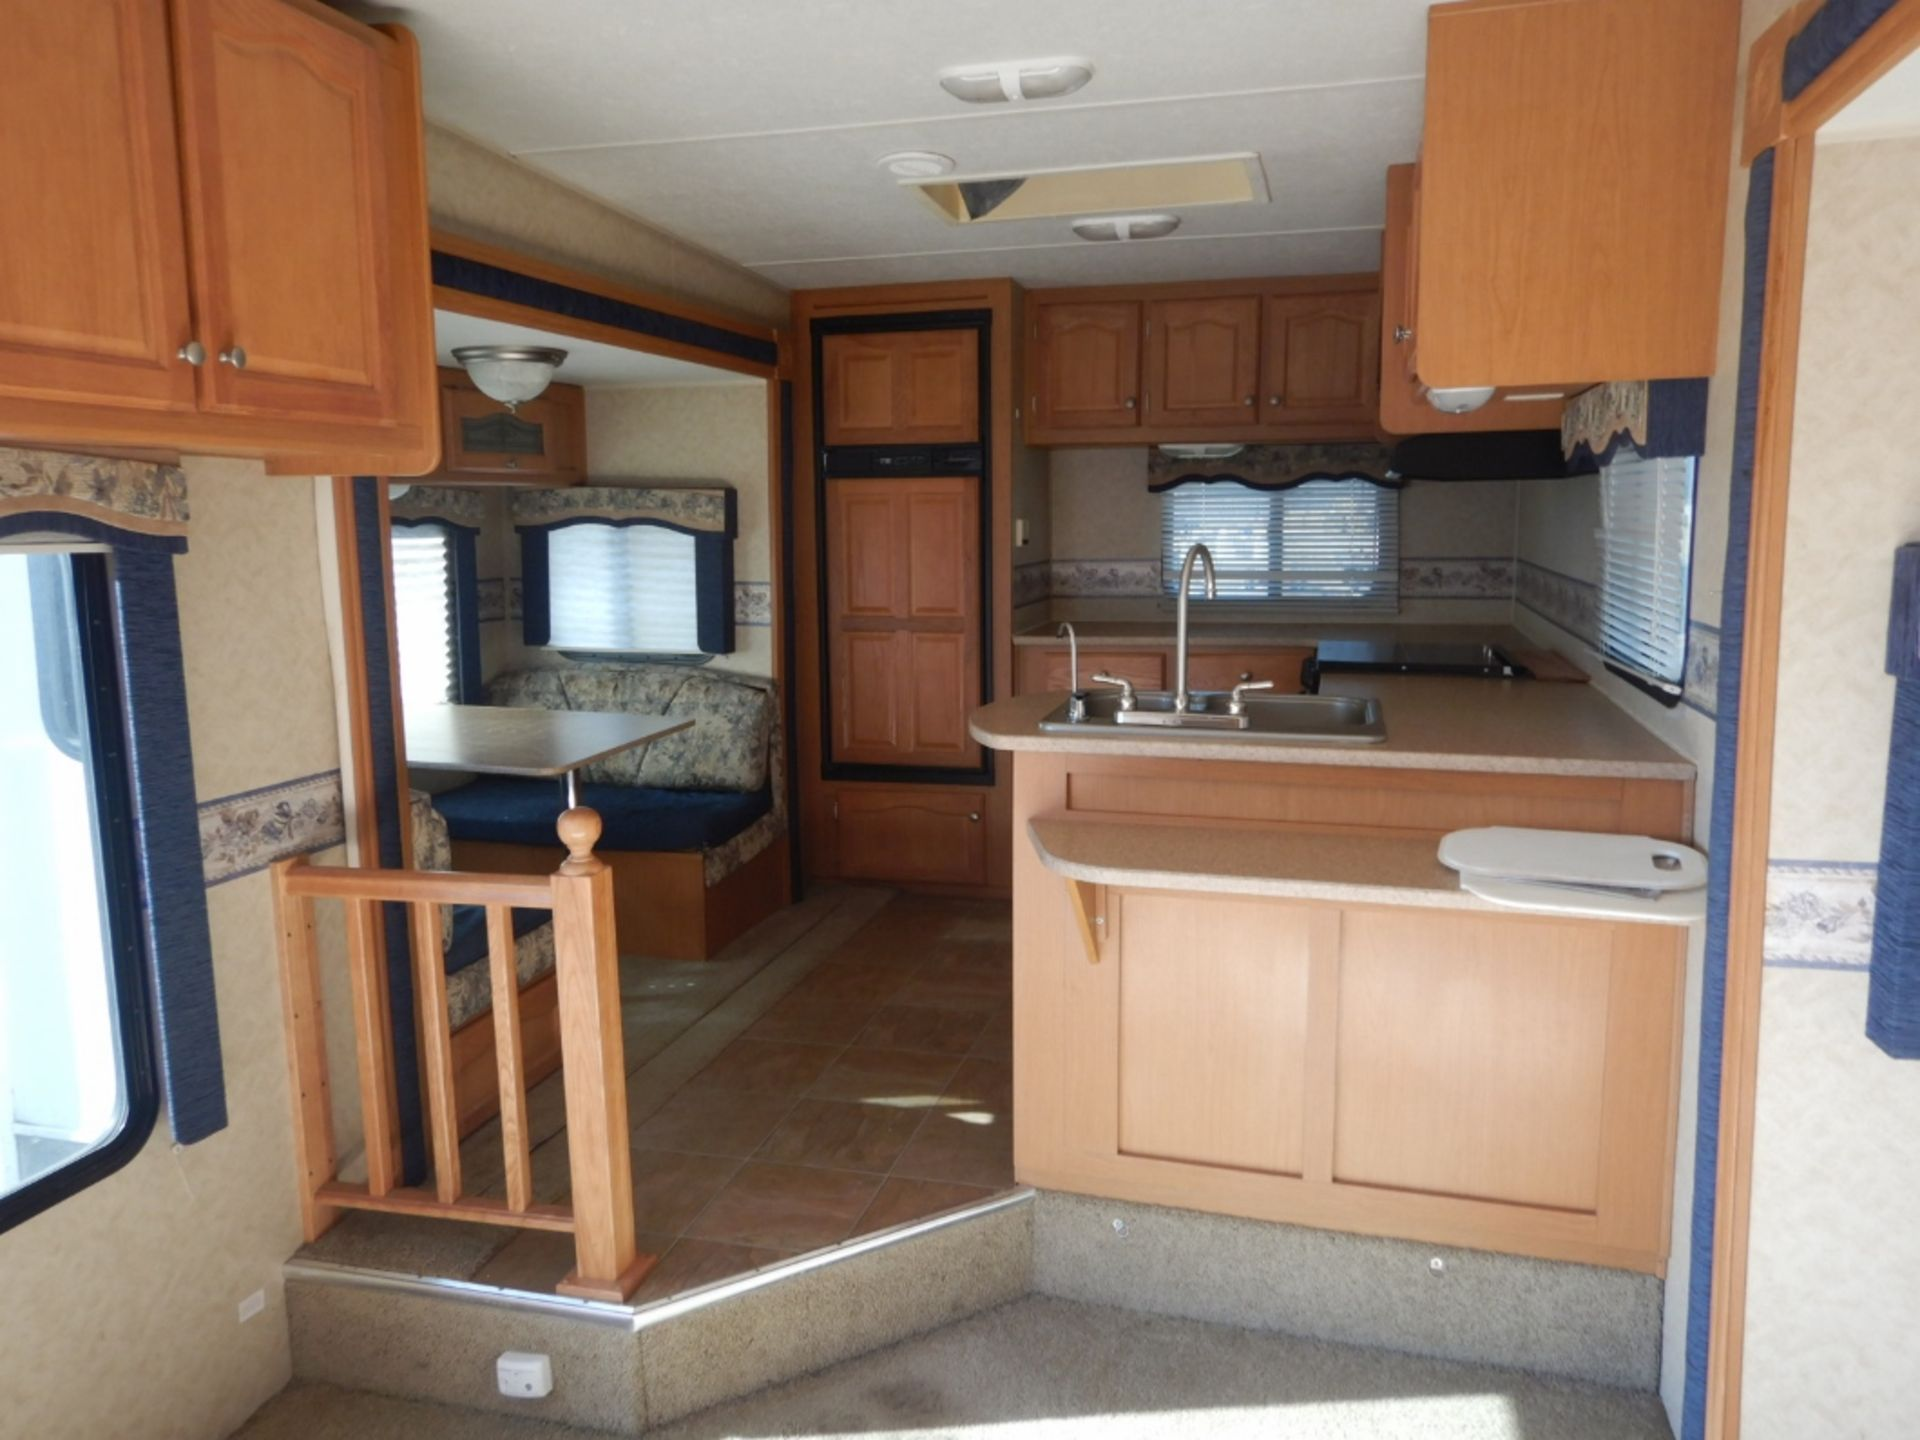 2006 DUTCHMEN DENALI 31RGBS/M5 5W HOLIDAY RV TRAILER S/N 47CFD1S226P616039 W/3-SLIDE-OUTS, AWNING, - Image 7 of 16